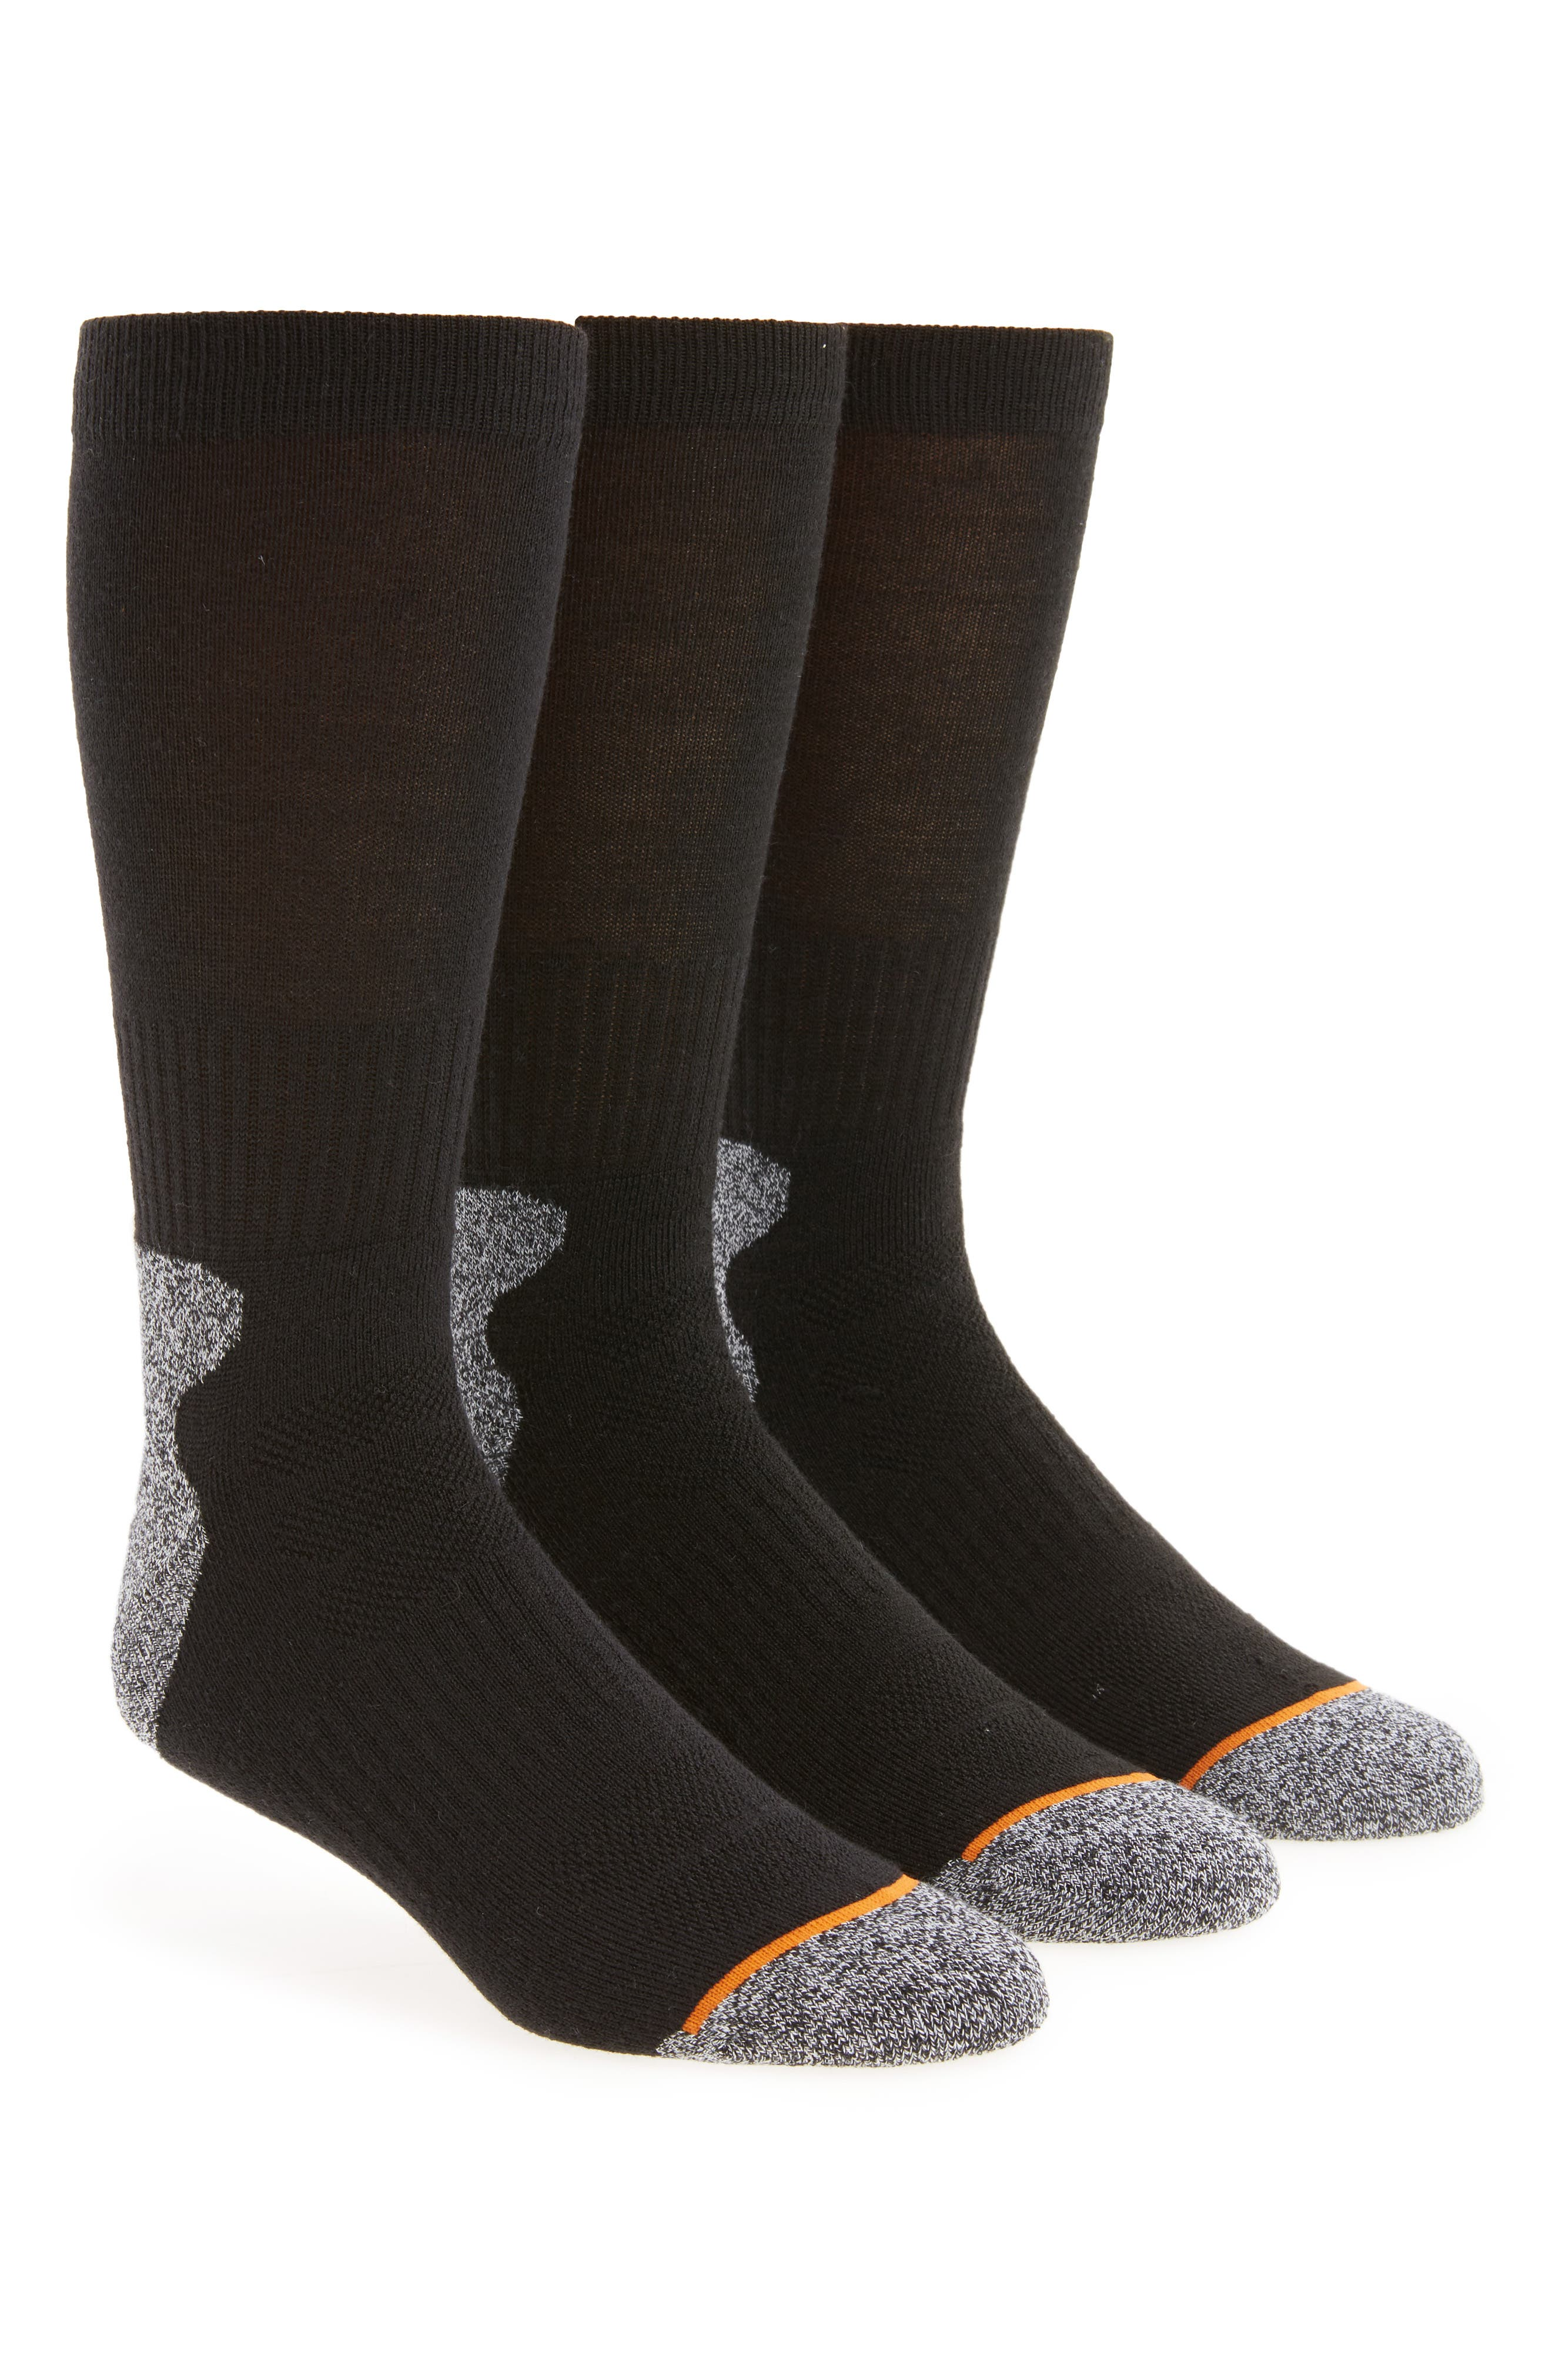 3-Pack Assorted Boot Socks,                         Main,                         color,